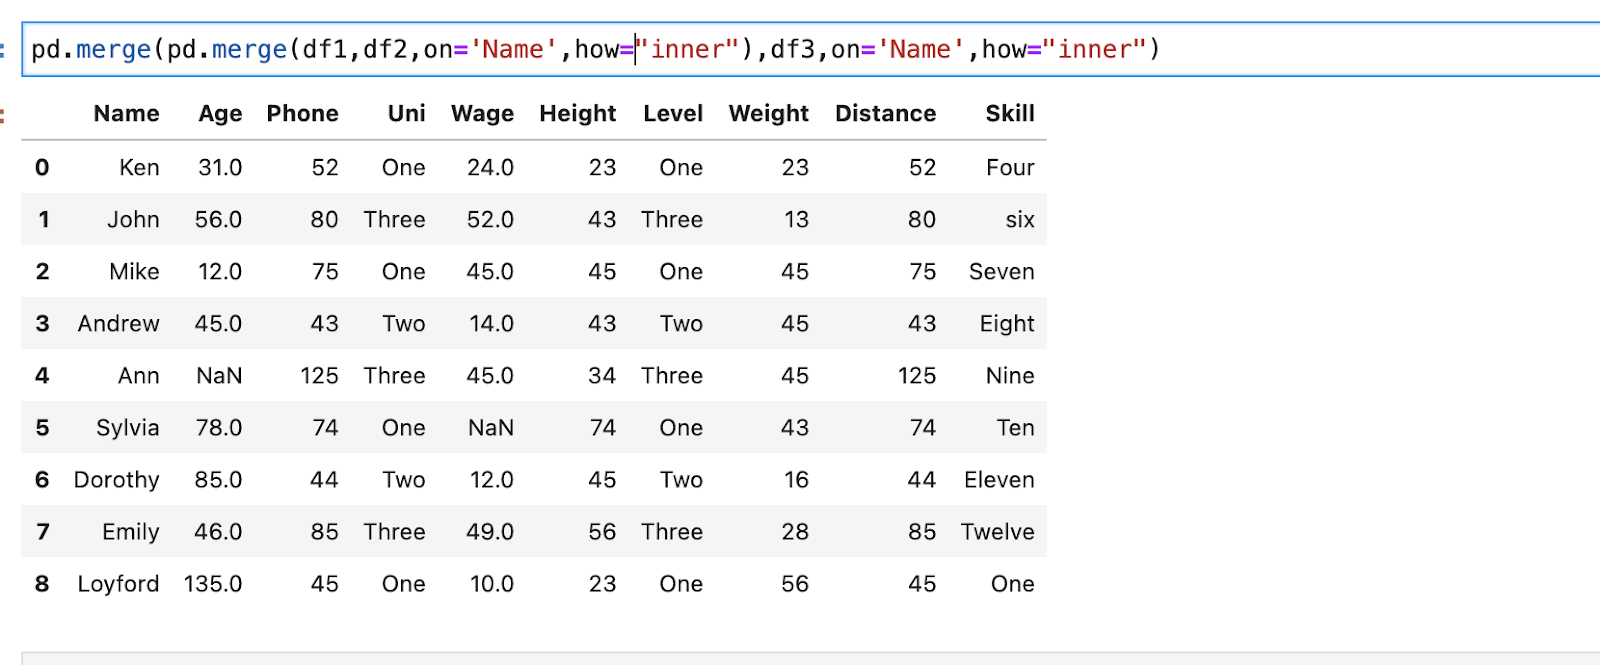 pandas.merge() with an inner join